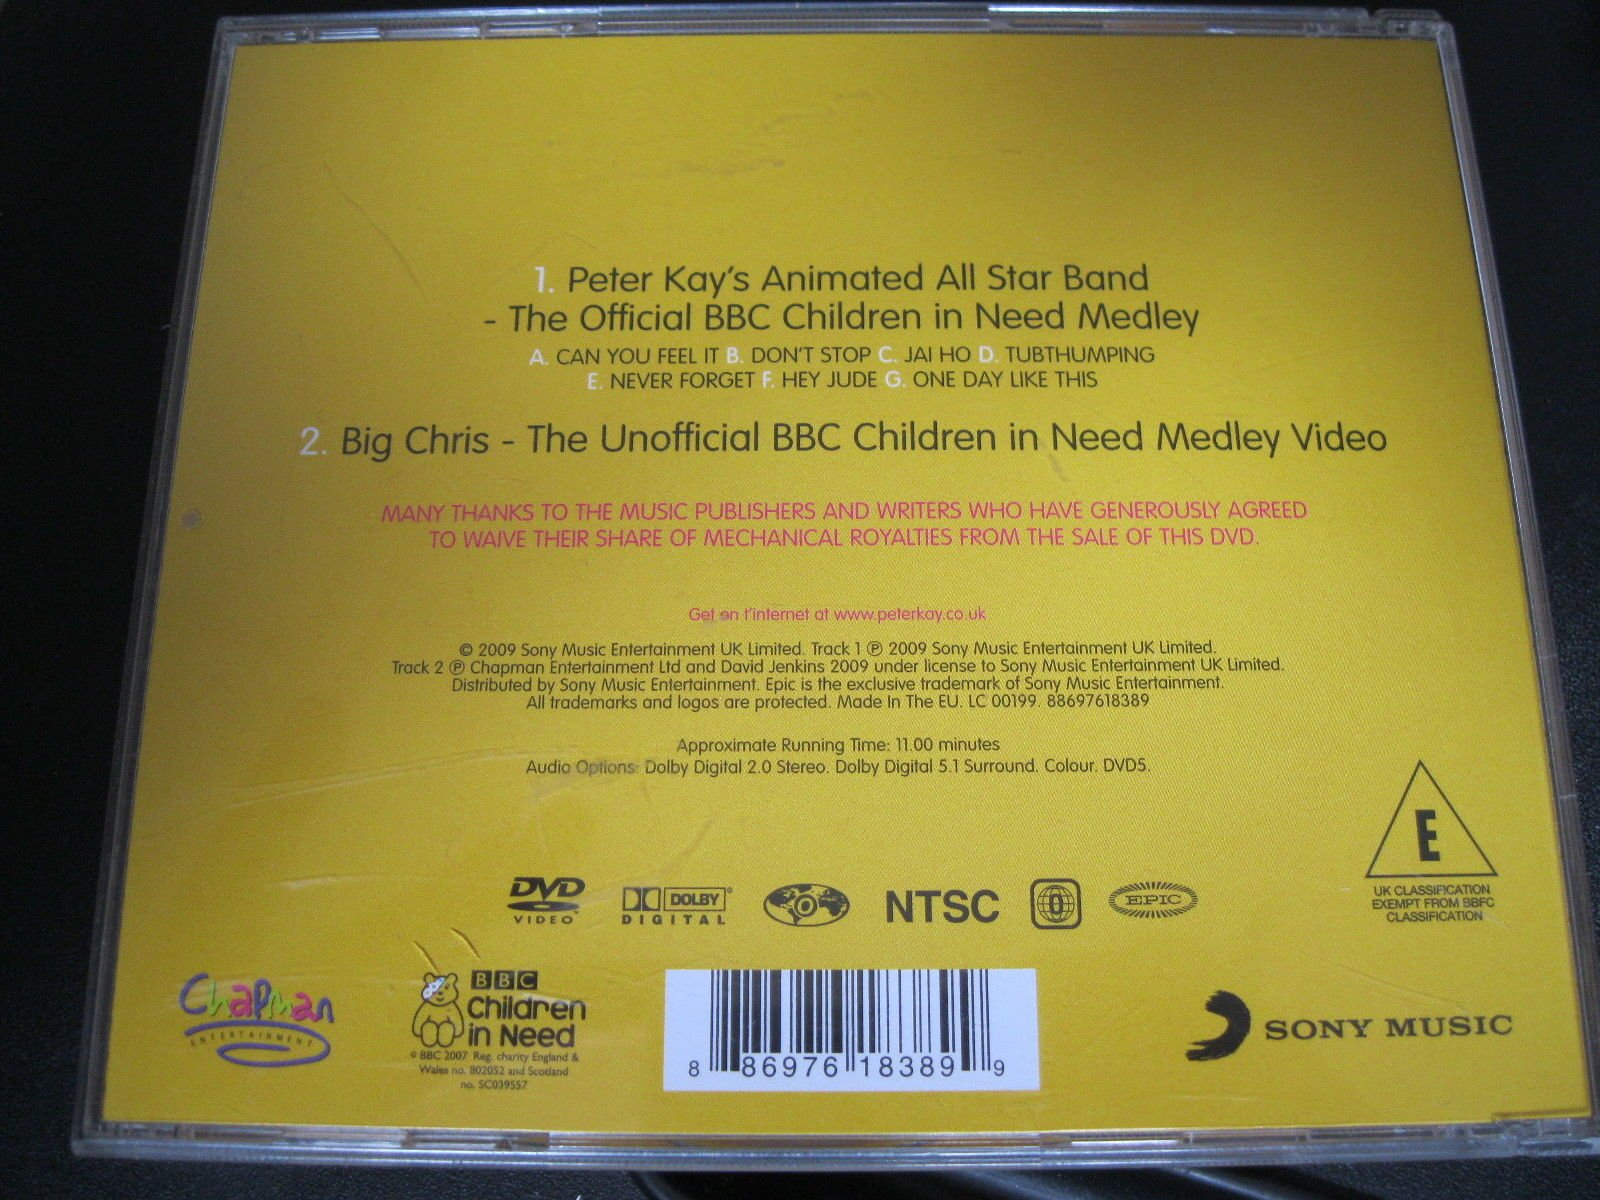 8b34ecdcafd2c6 PETER KAY S ANIMATED ALL STAR BAND. THE OFFICIAL BBC 2009 CHILDREN IN NEED  DVD CD SINGLE.  Amazon.co.uk  PETER KAY  Books